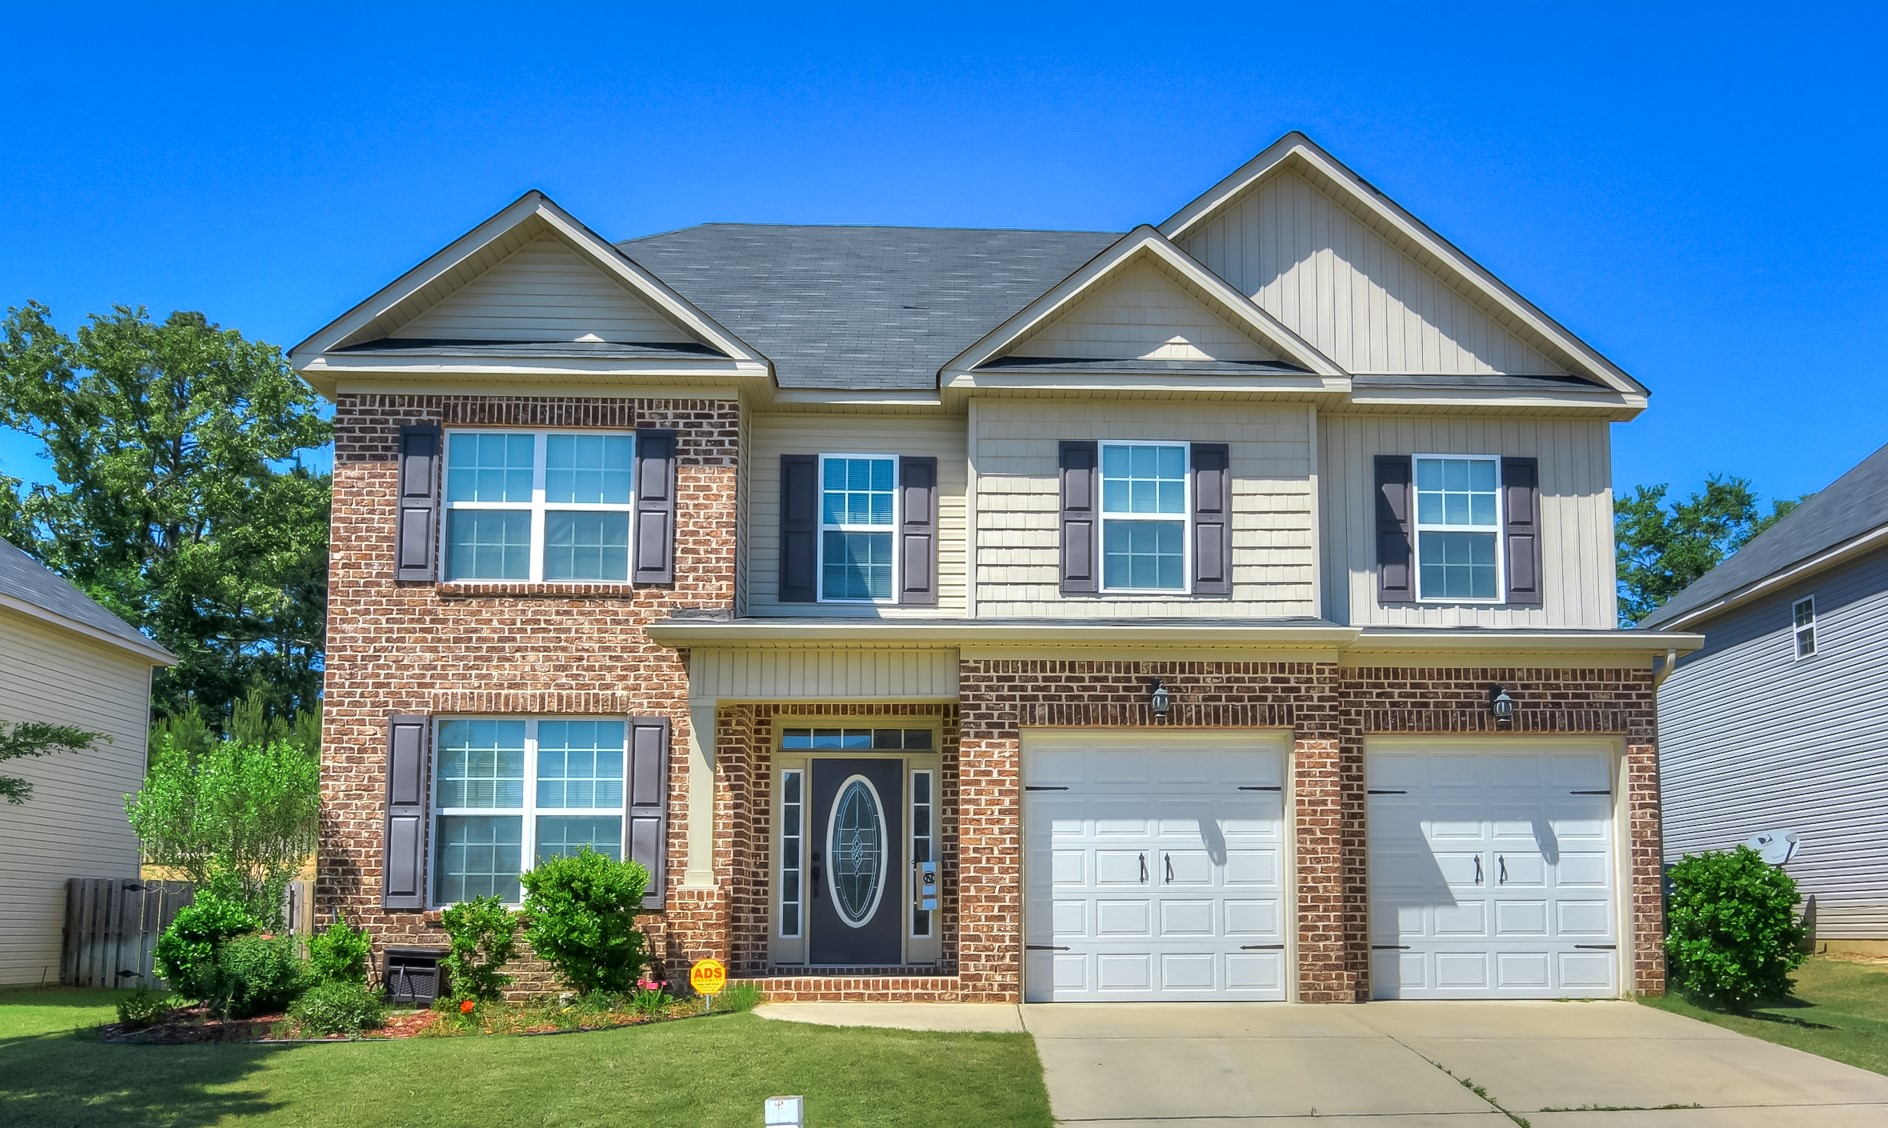 perfect family home in grovetown